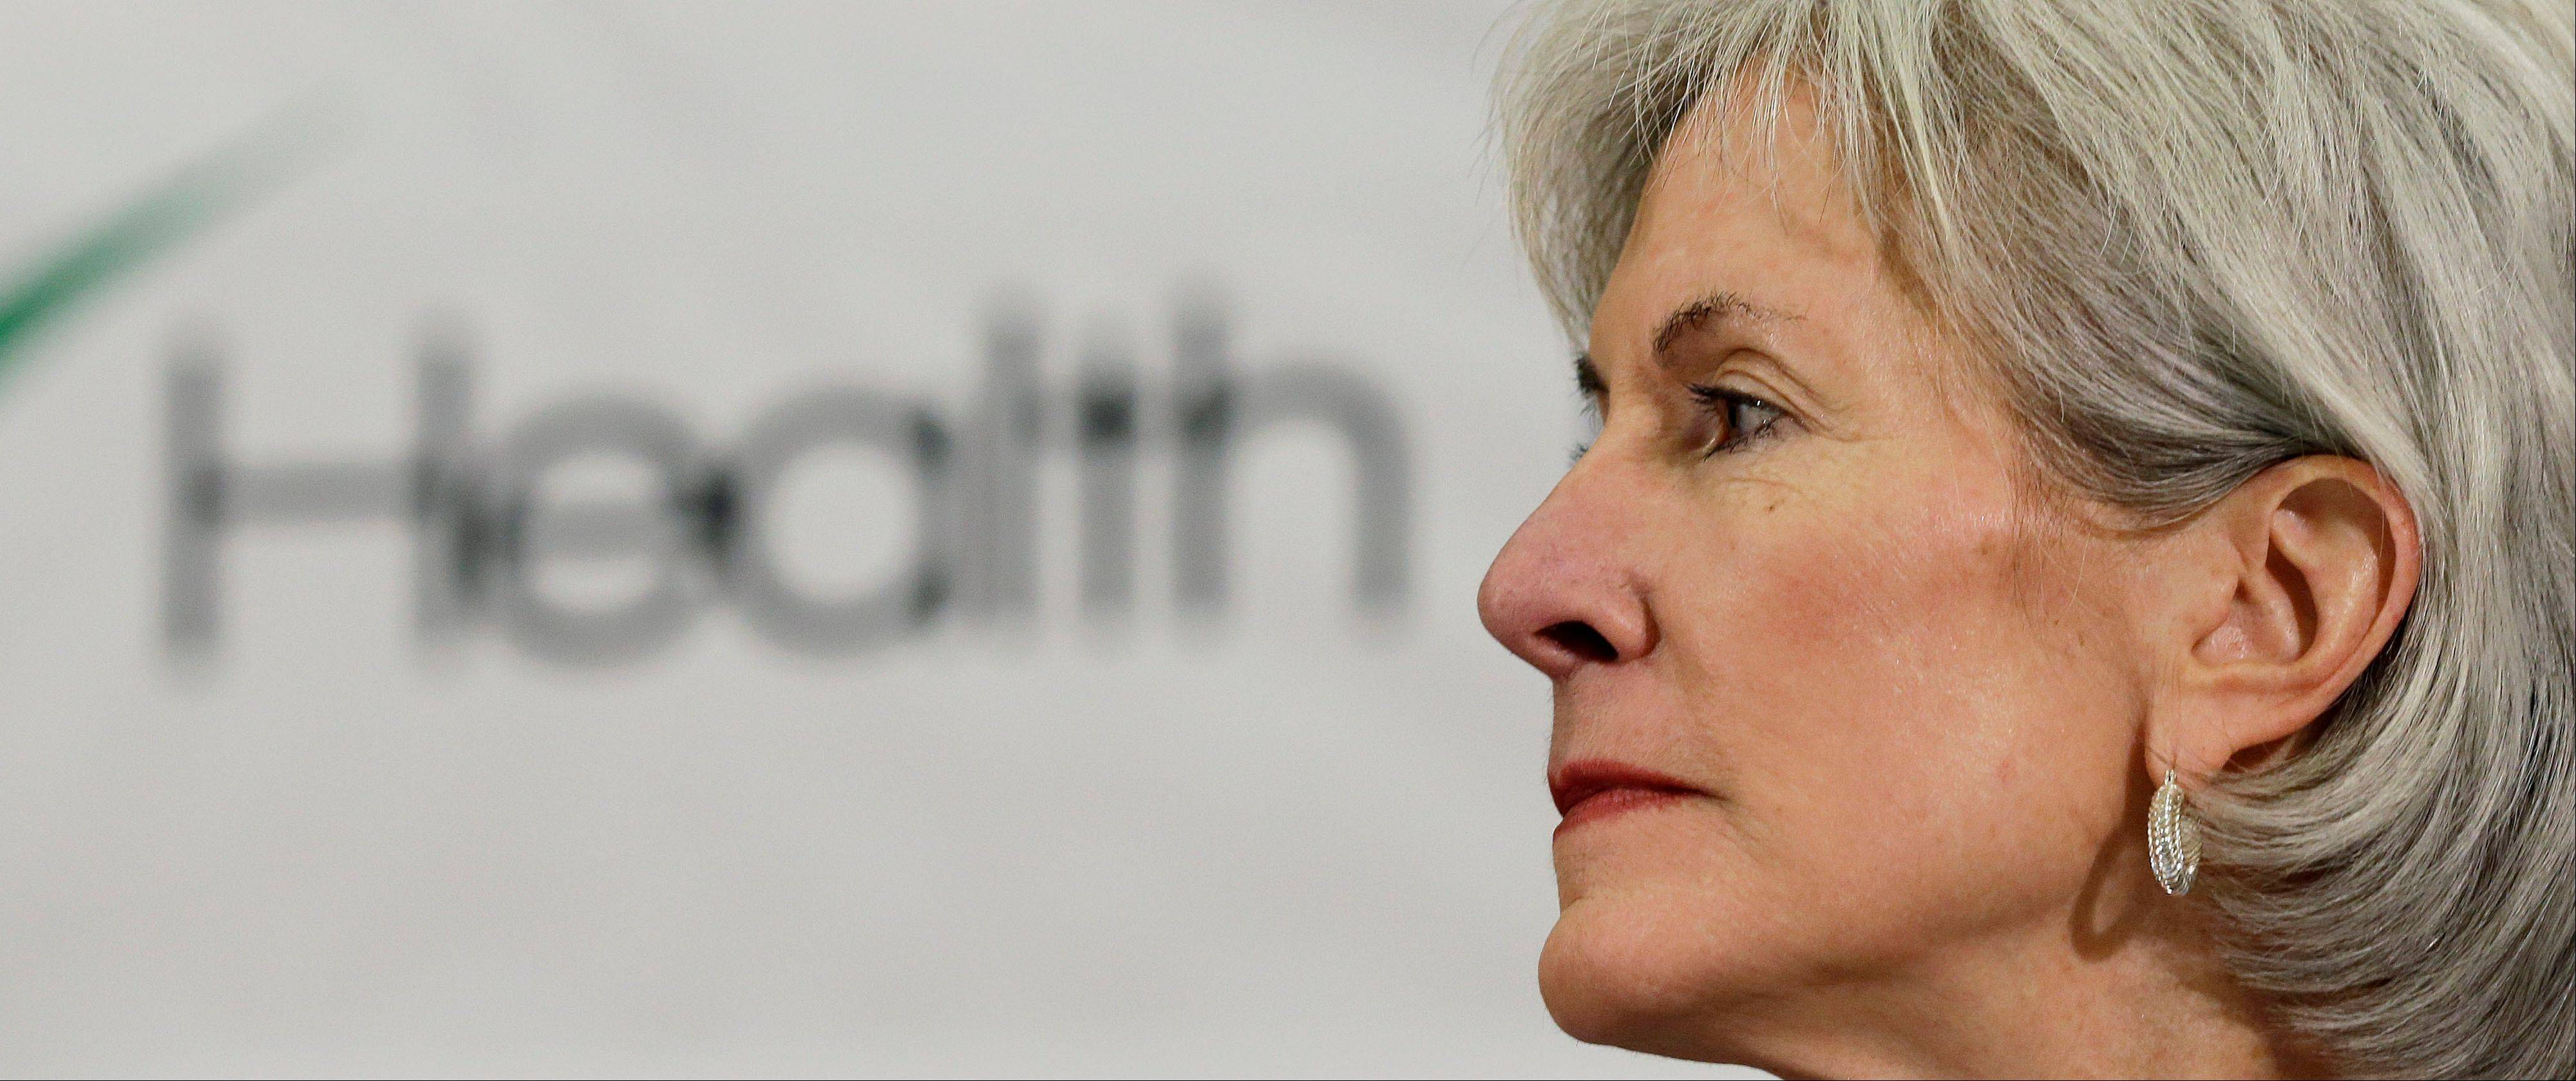 Health and Human Services Secretary Kathleen Sebelius takes part in a panel discussion Friday to answer questions about the Affordable Care Act enrollment, in San Antonio.